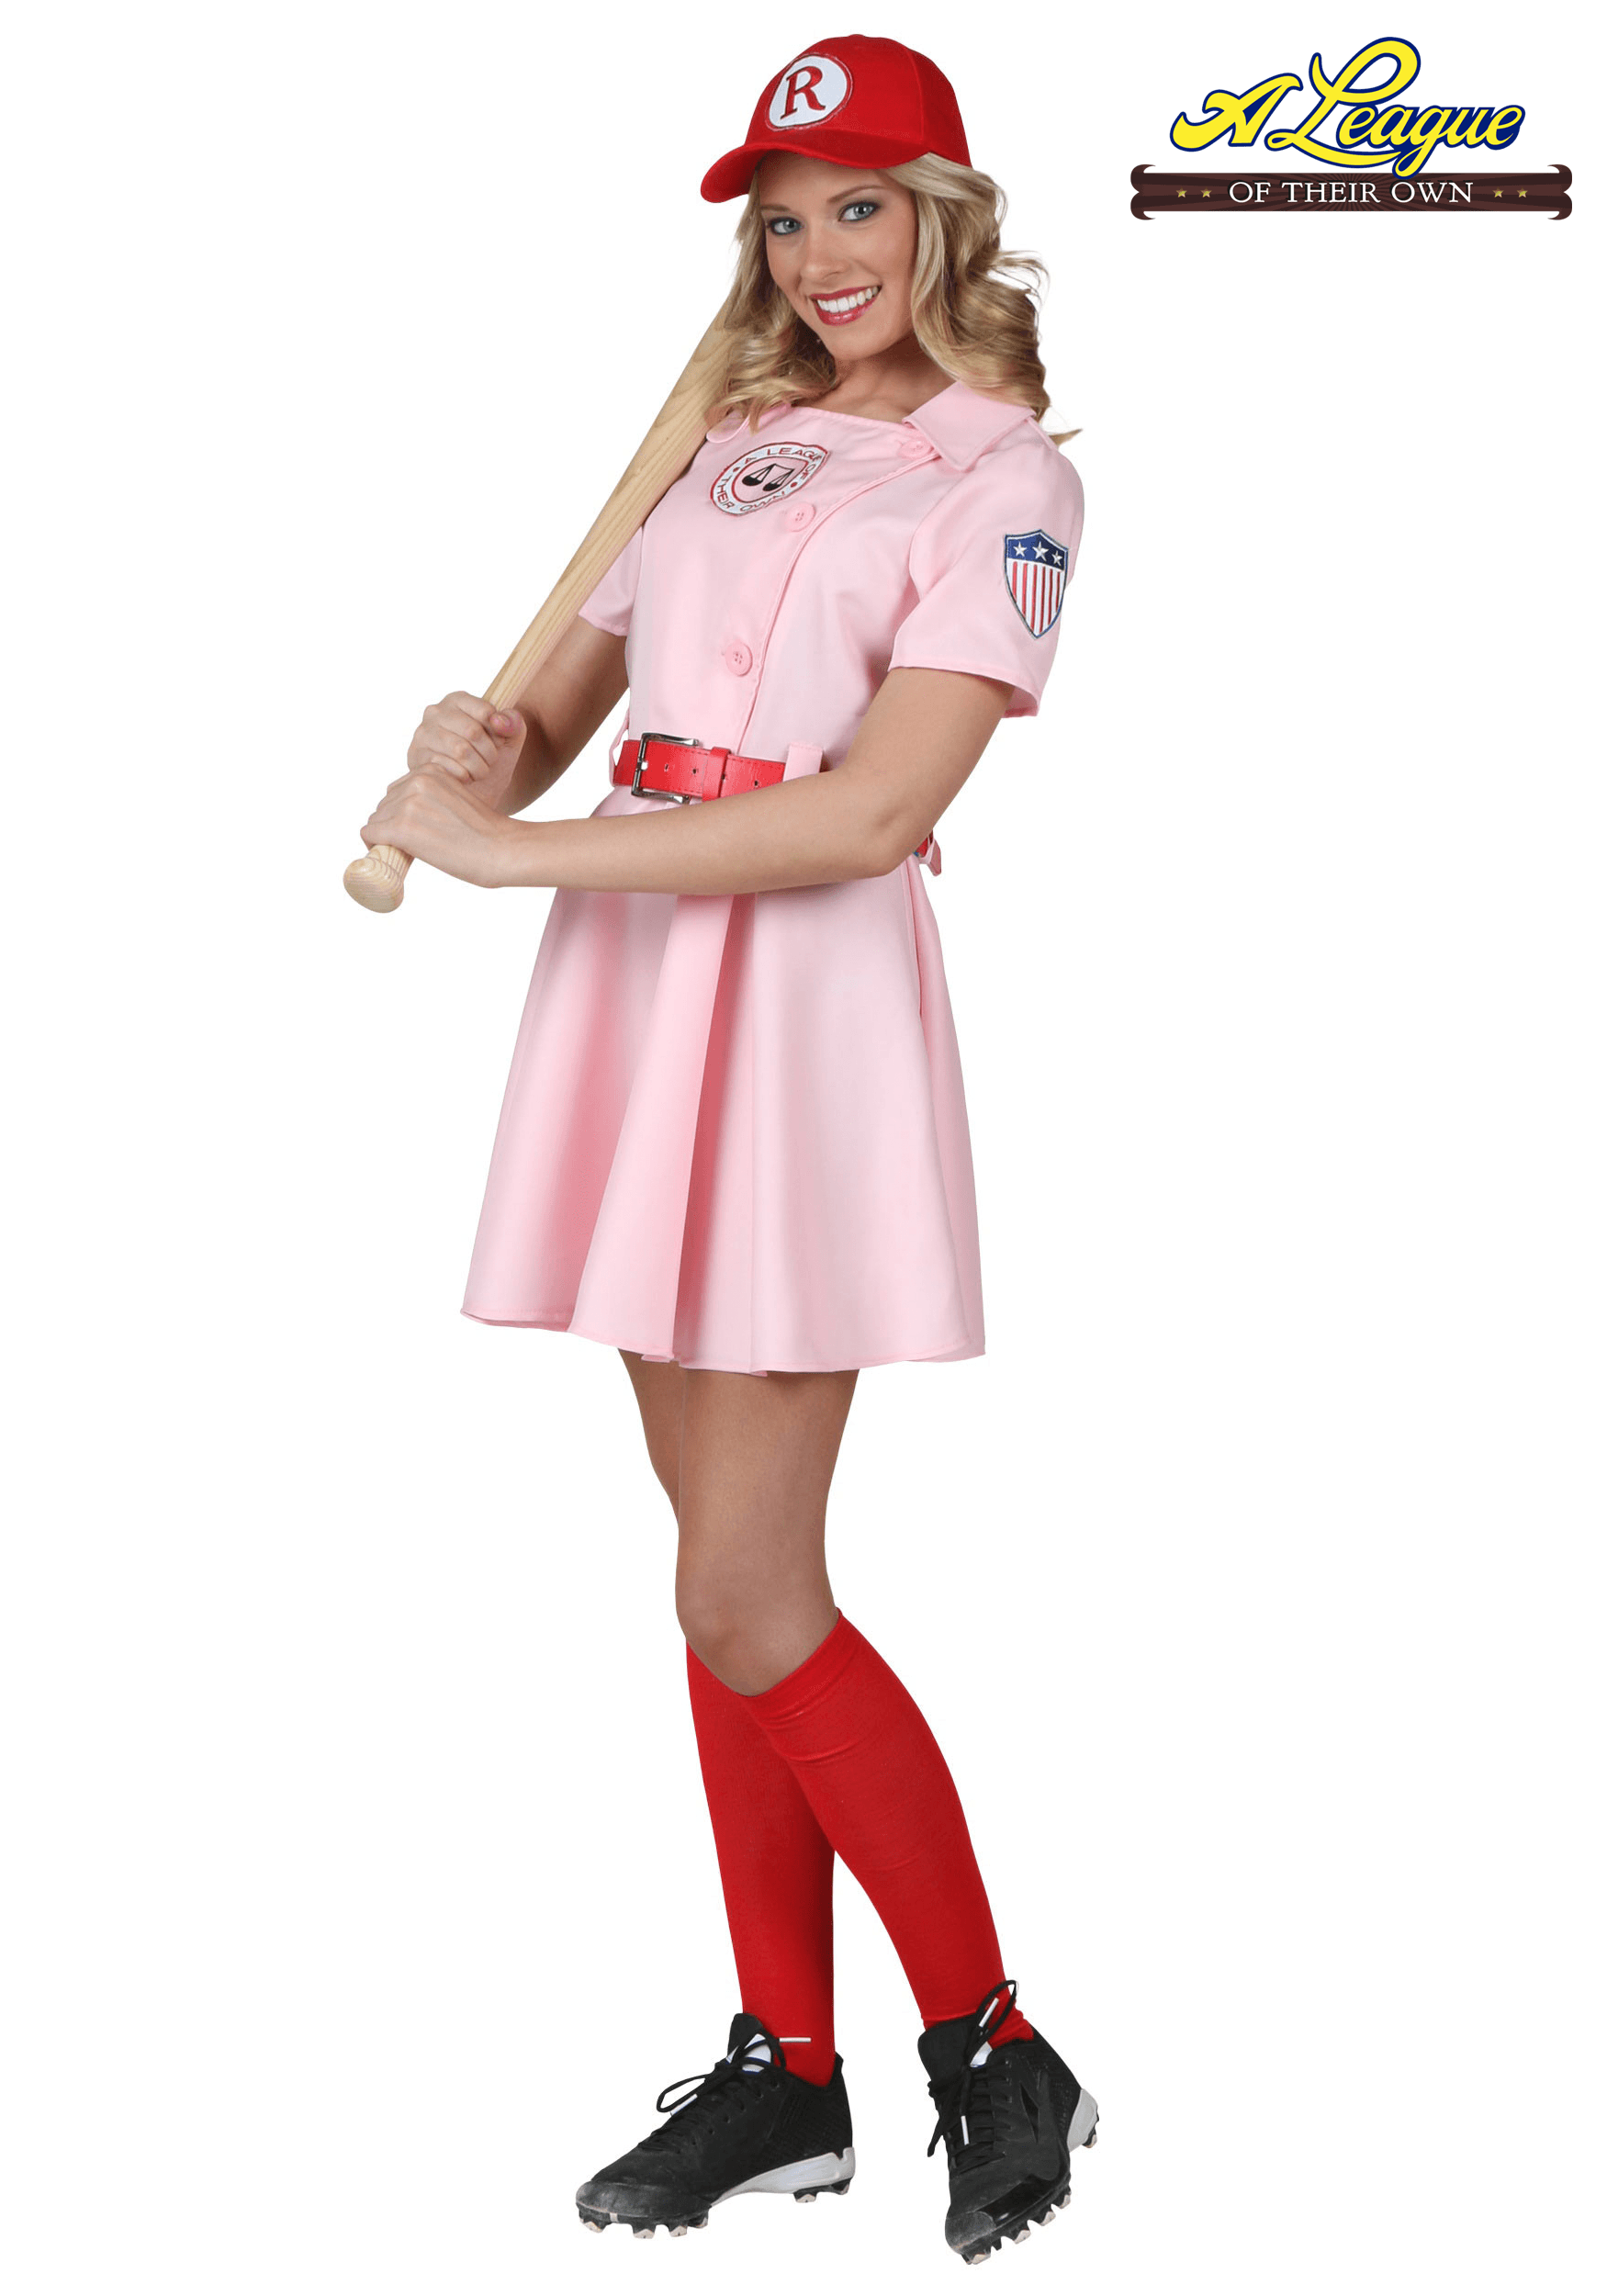 Sports halloween costumes uniforms halloweencostumes womens a league of their own dottie costume solutioingenieria Image collections